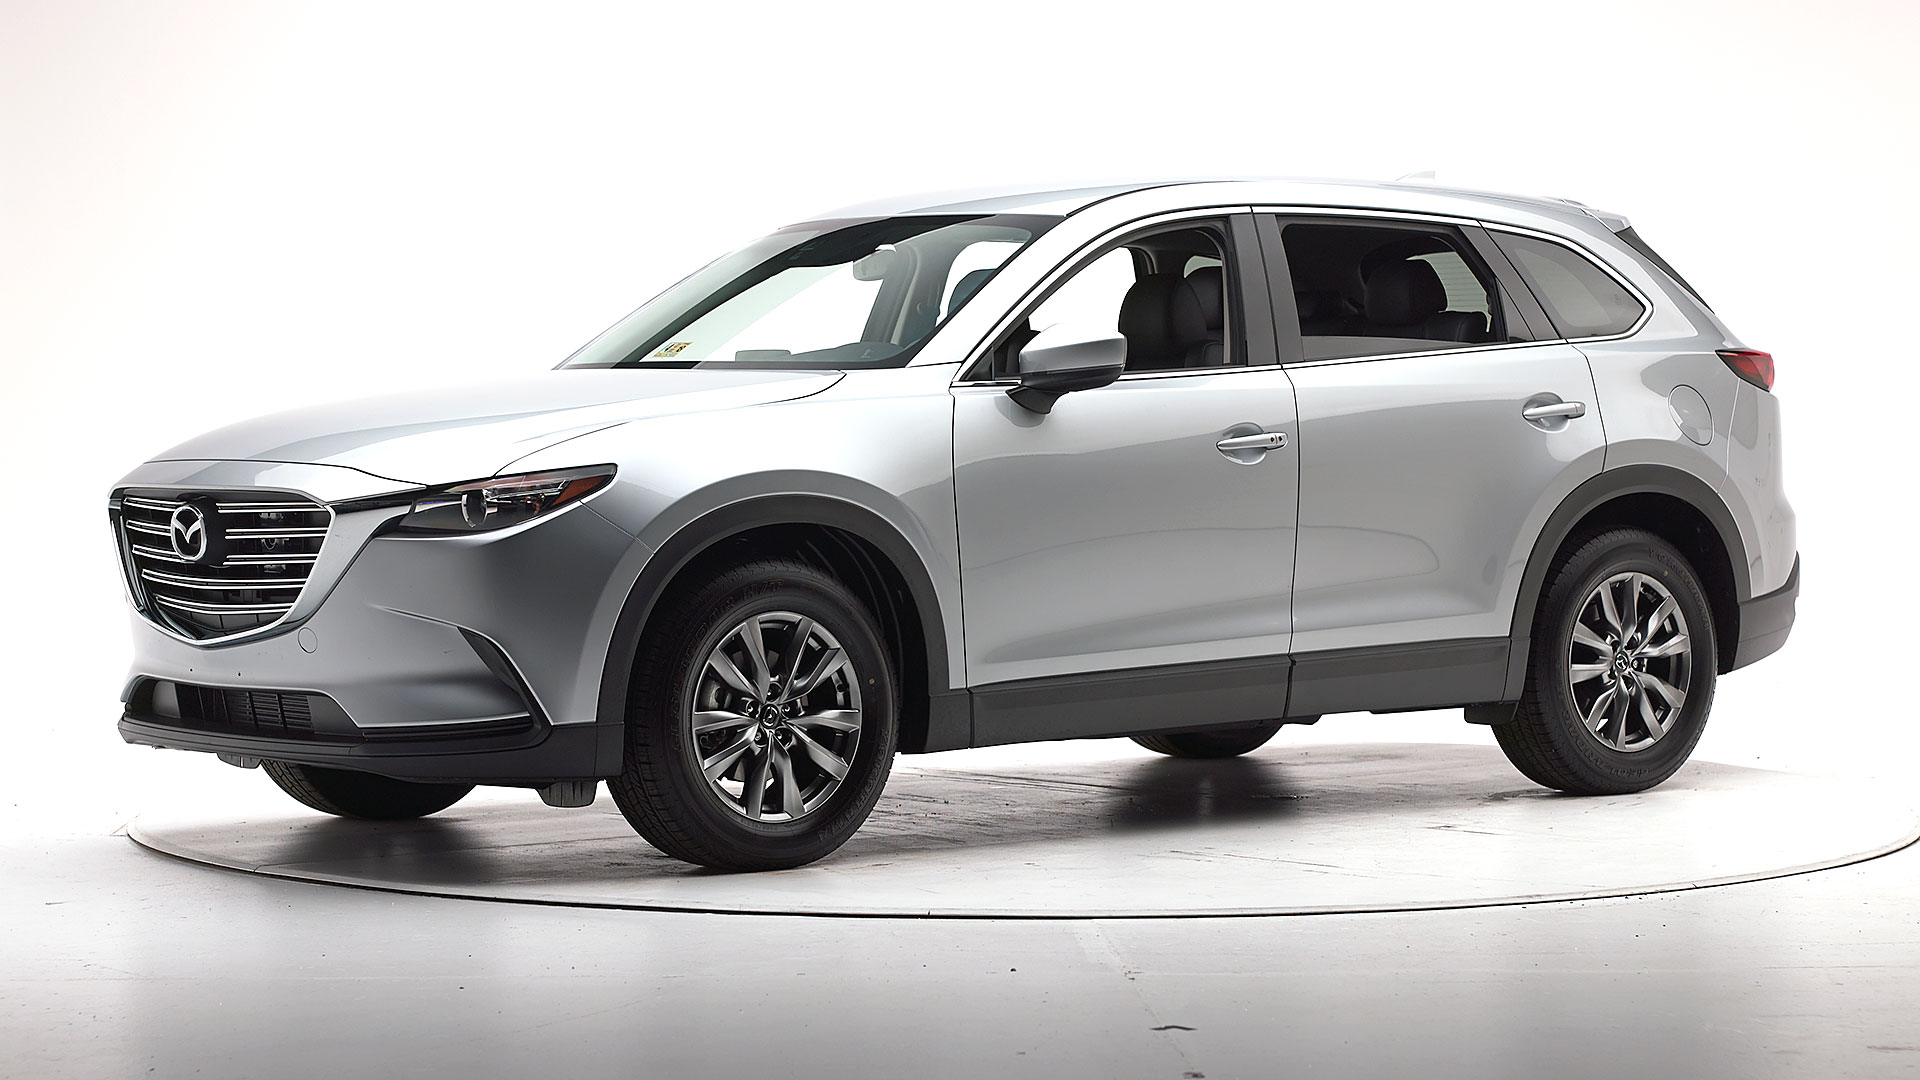 2017 Mazda CX-9 4-door SUV